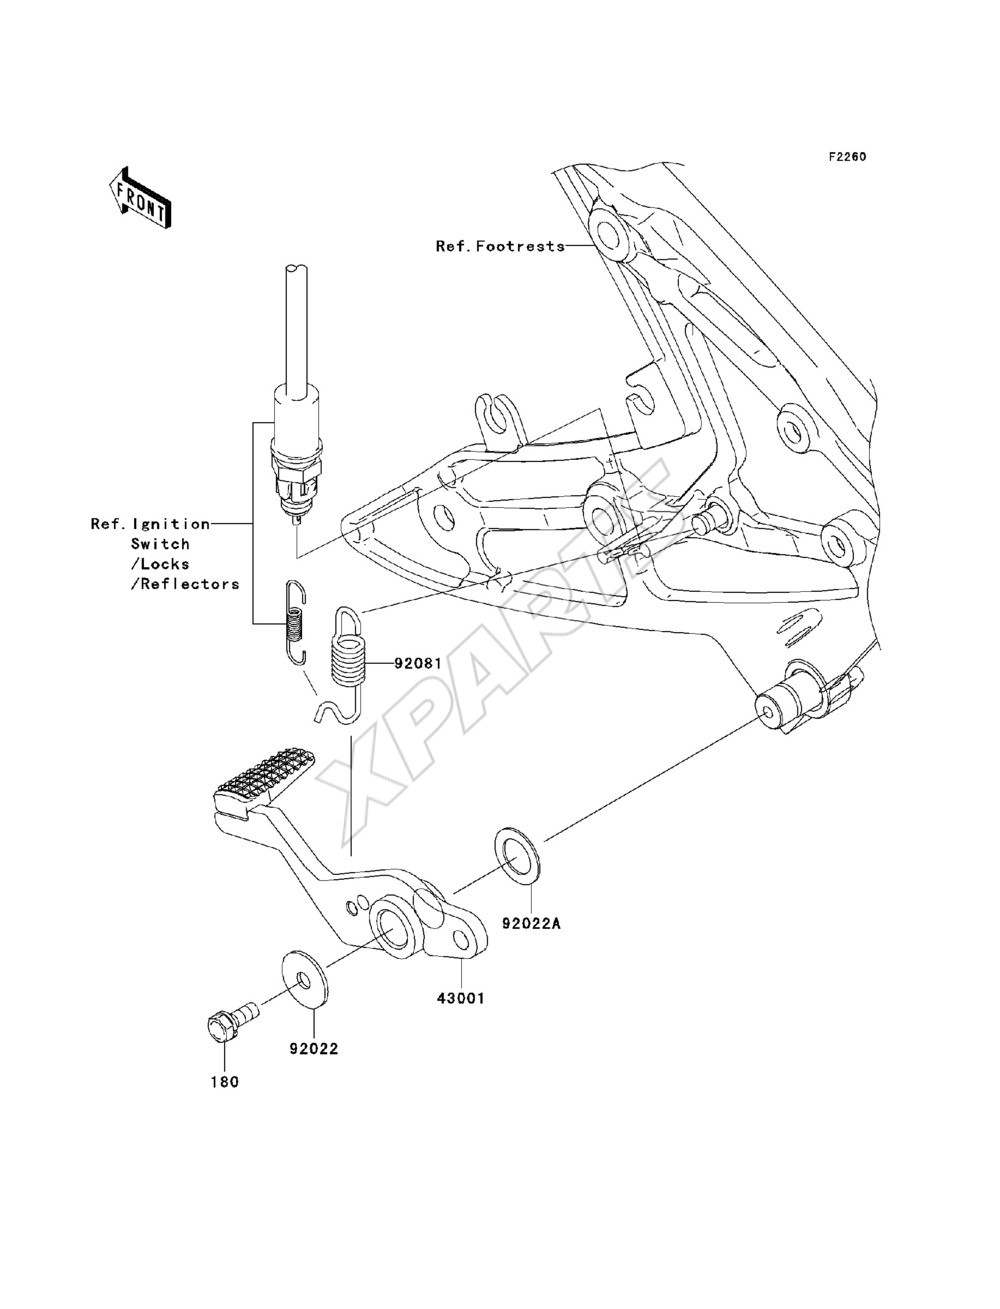 ninja 650r engine diagram | wiring library 2008 kawasaki 650r wiring diagrams kawasaki vaquero wiring diagrams #10